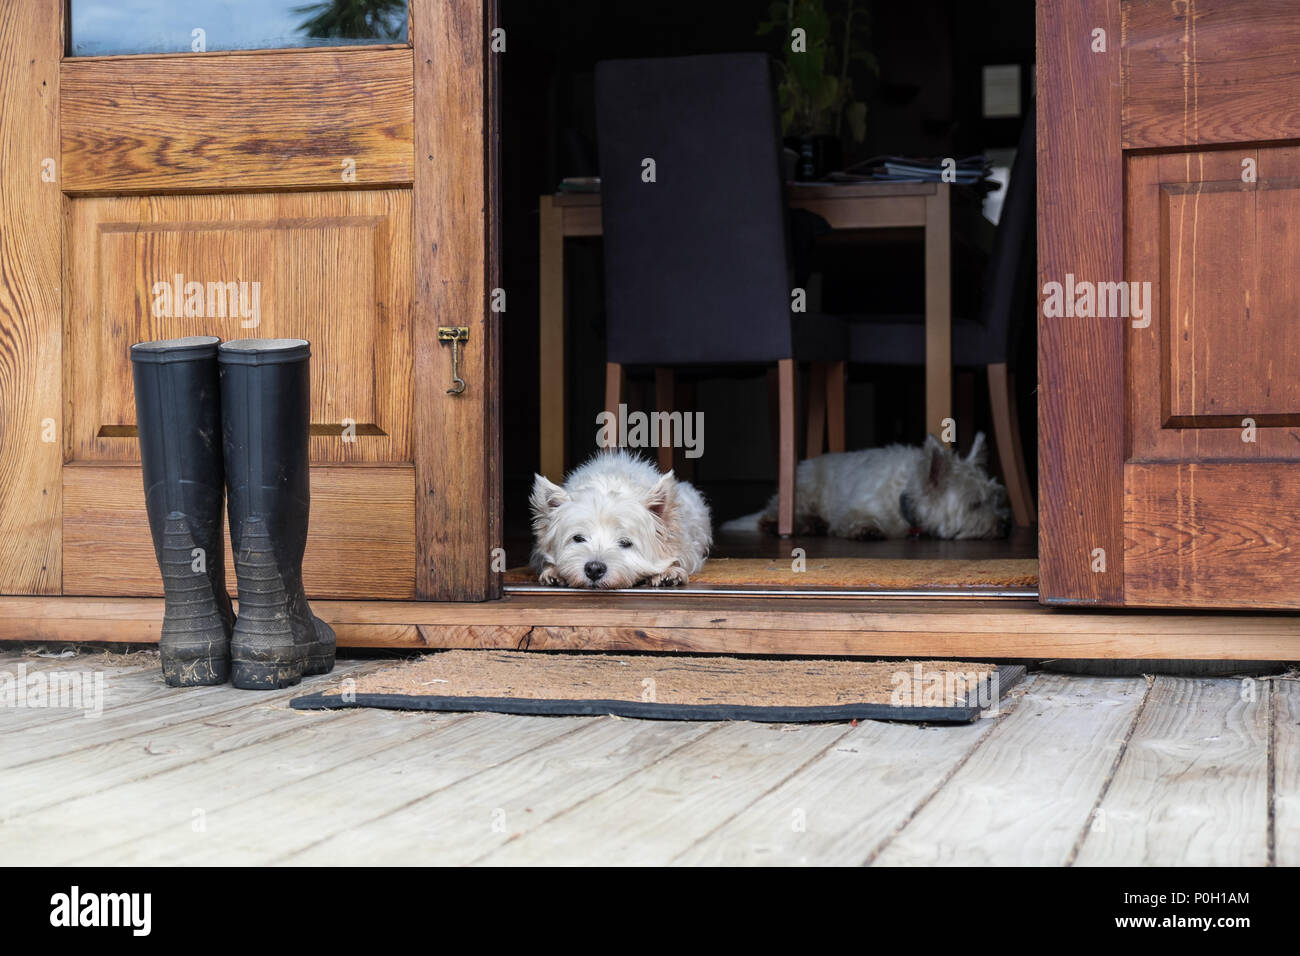 Two bored westies inside a farmhouse, laying on the floor by a door looking outside - landscape orientation - photographed in New Zealand, NZ - Stock Image